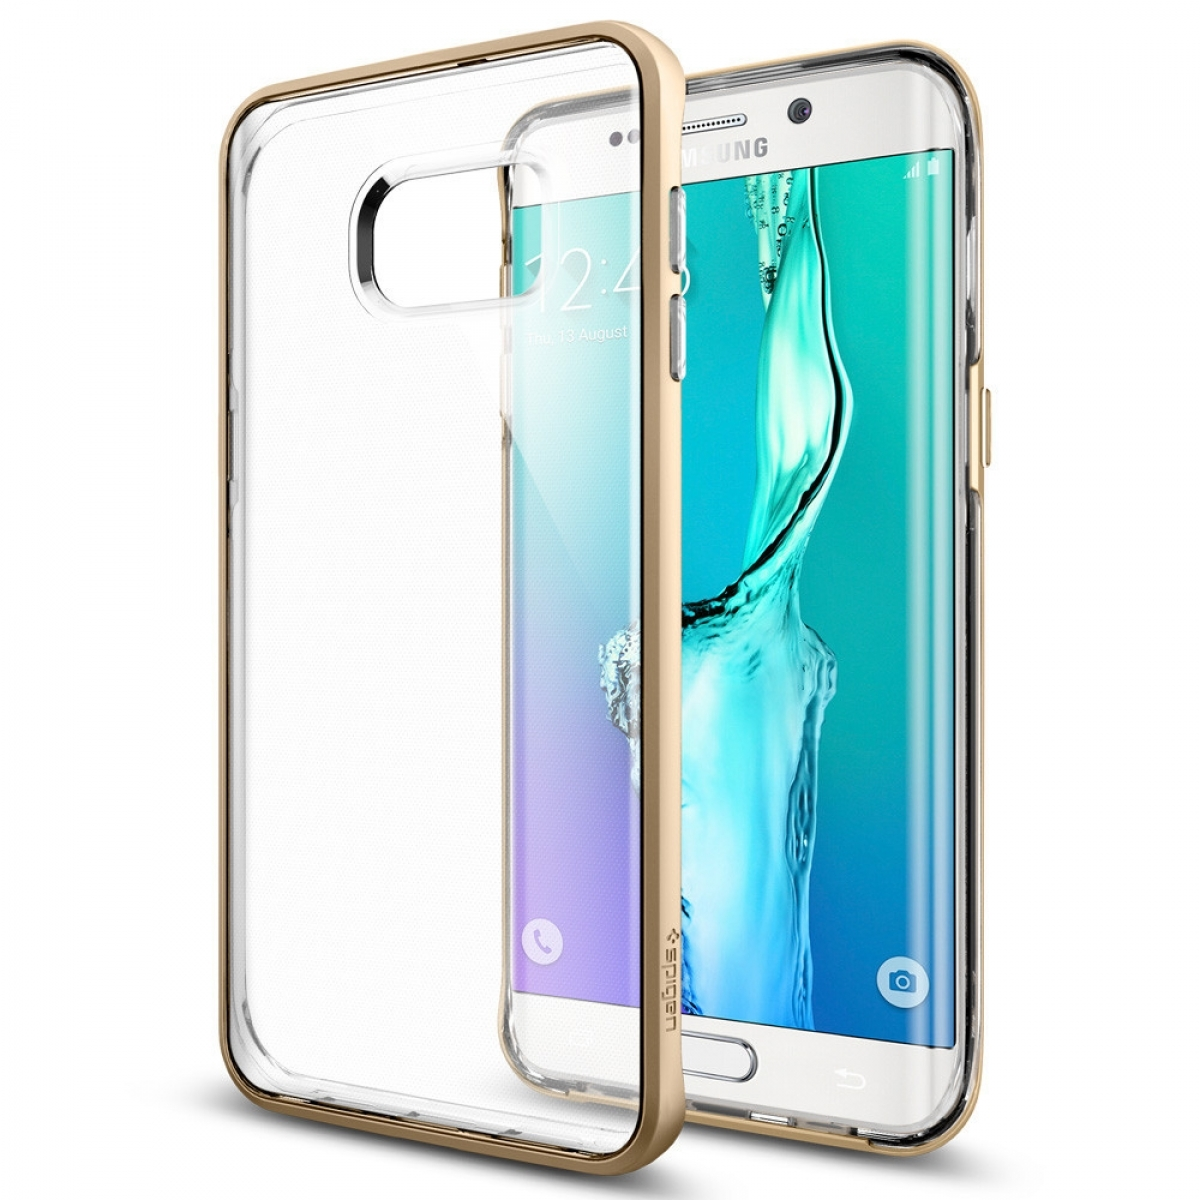 competitive price 59084 f4684 SPIGEN Galaxy S6 Edge+ Neo Hybrid Crystal Champagne Gold Case